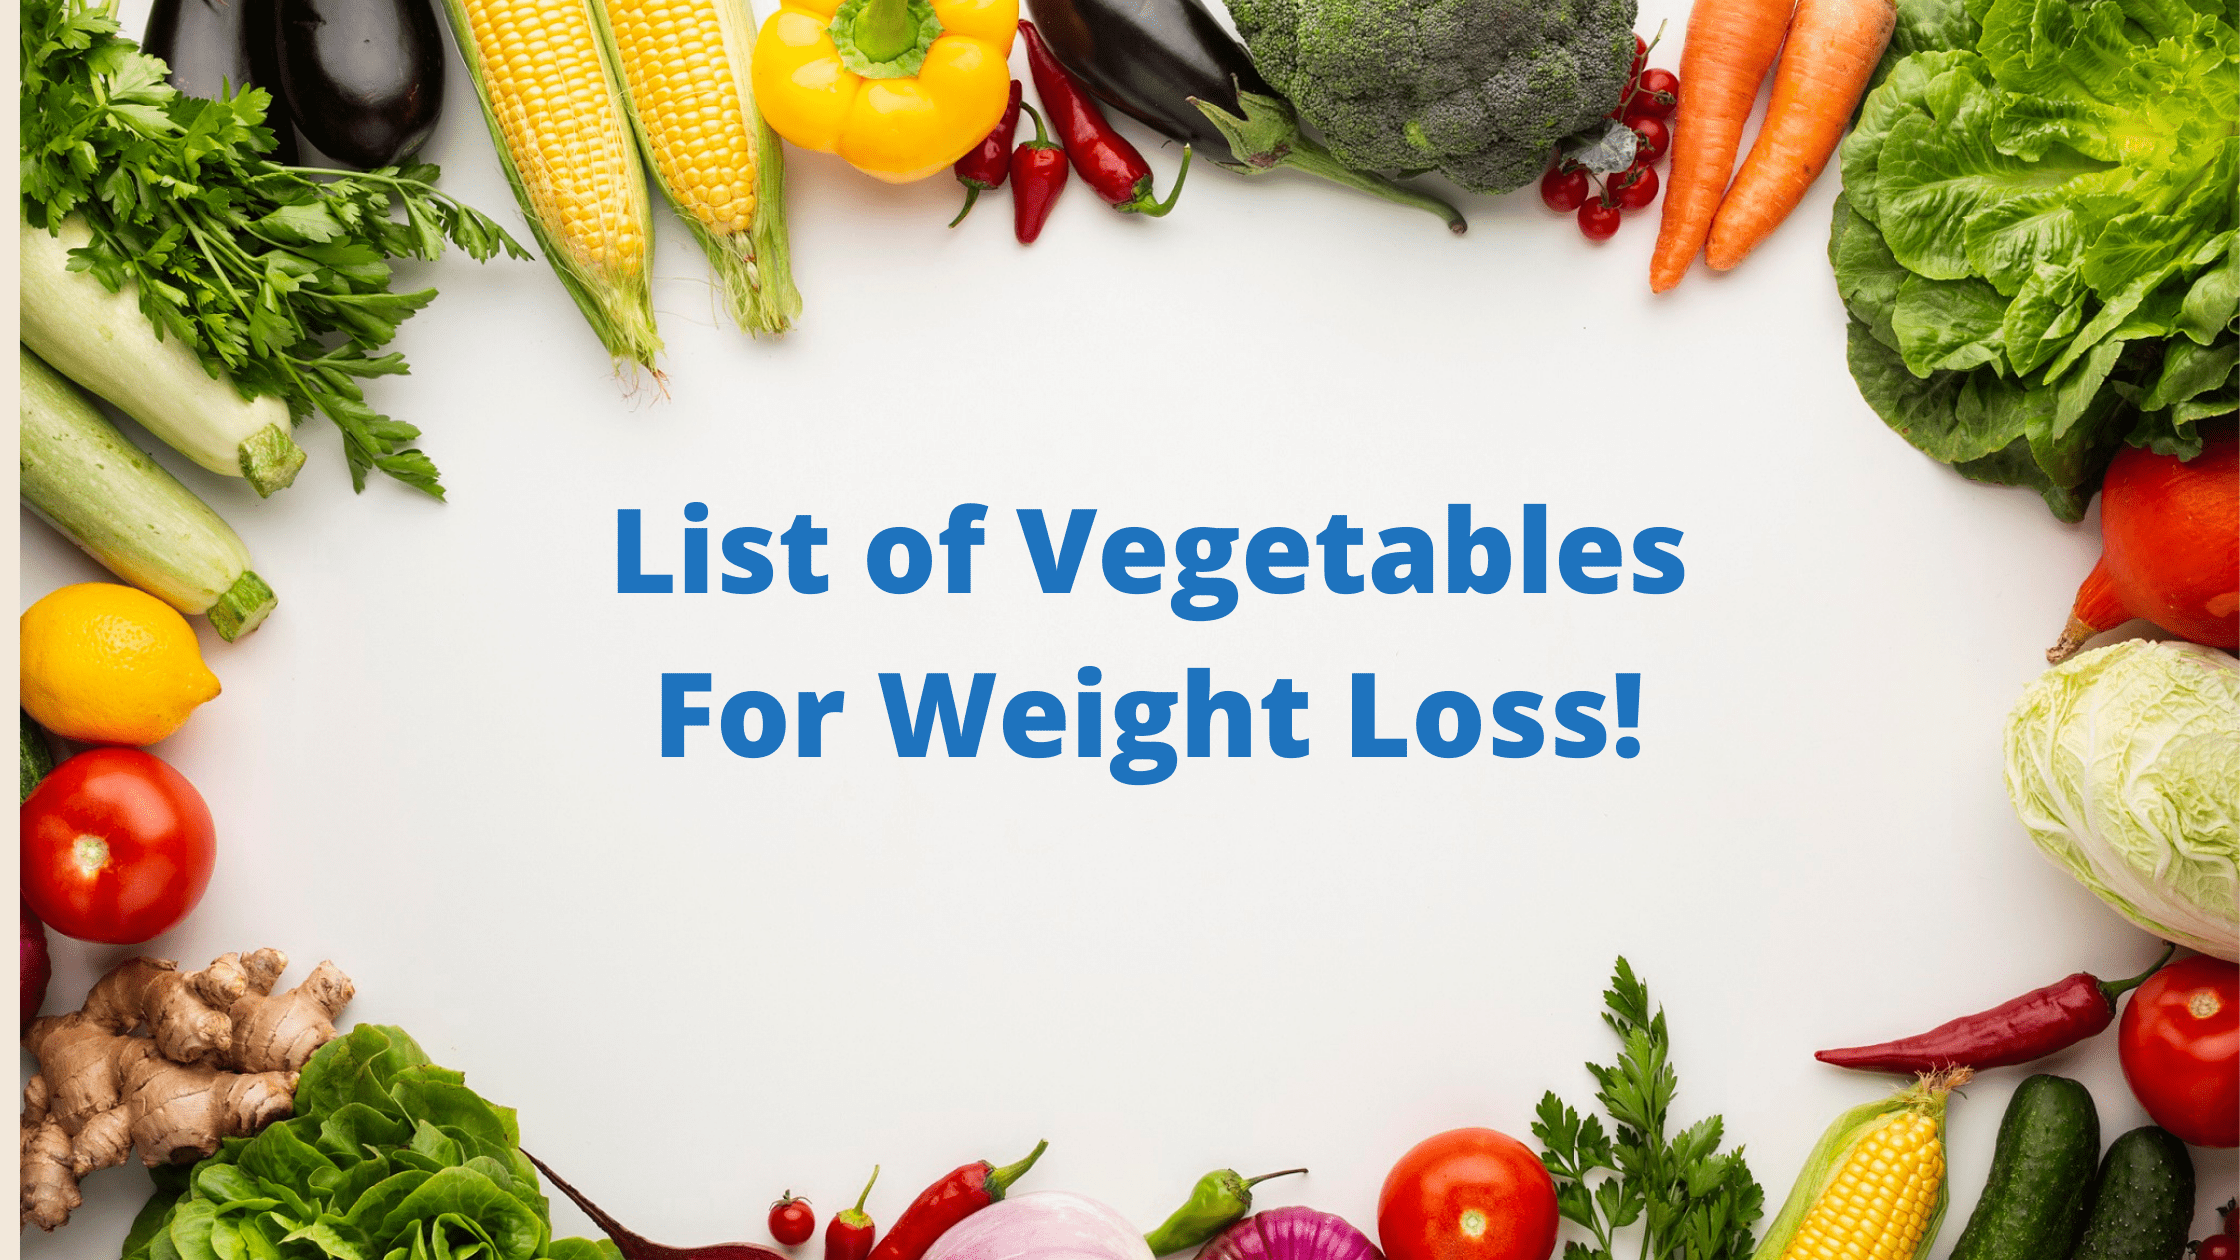 List of Vegetables For Weight Loss